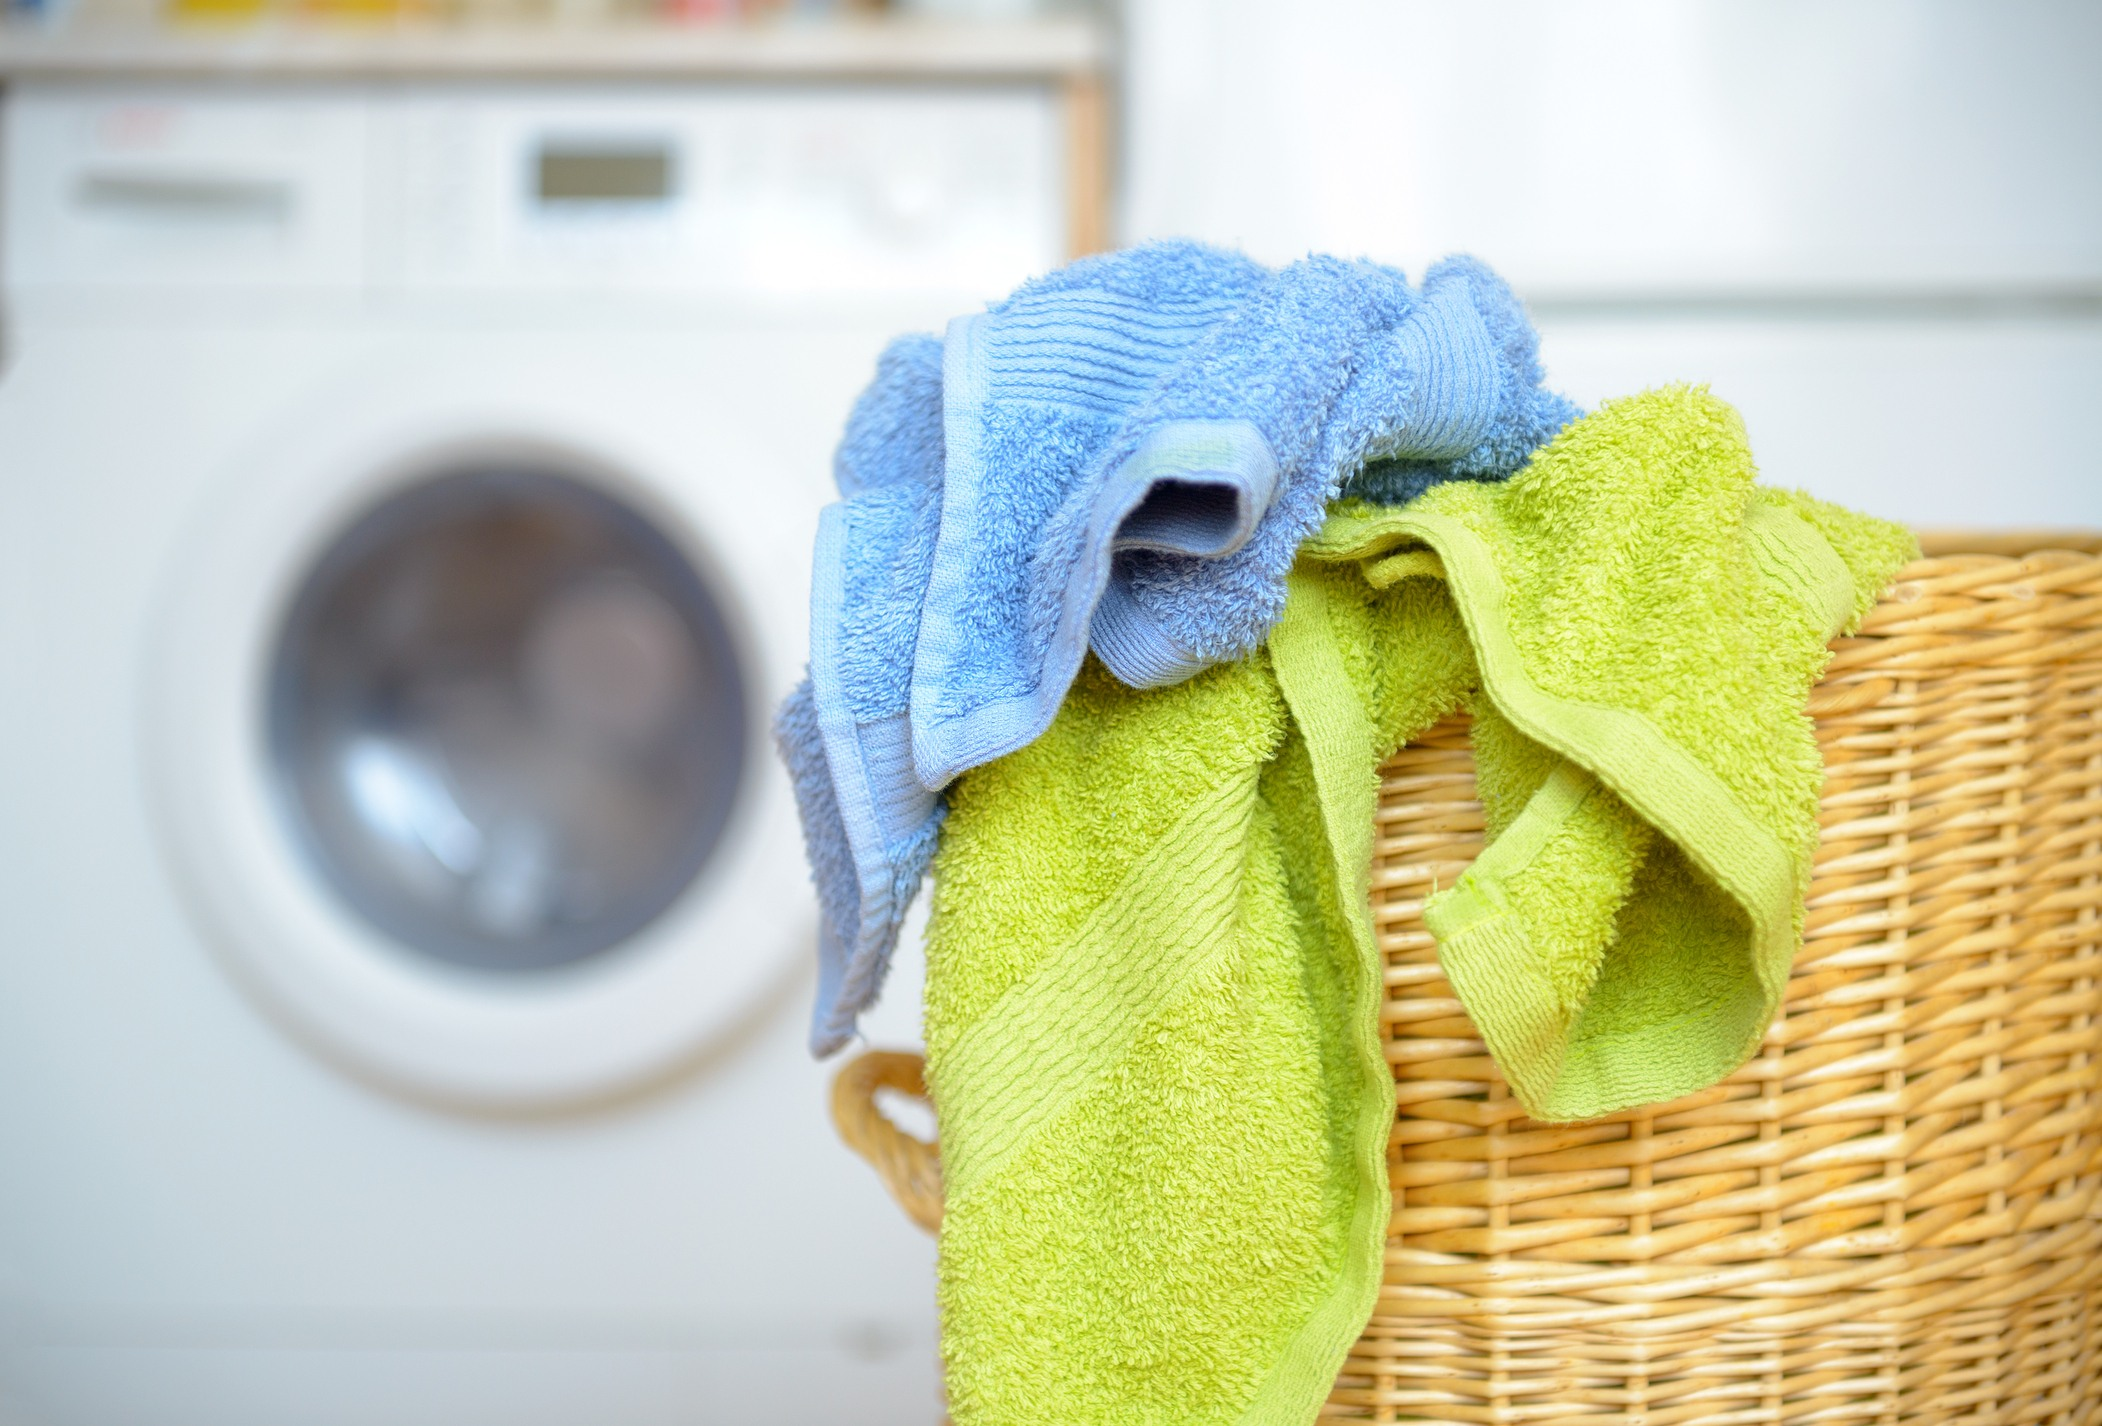 towels in basket with washing machine in background